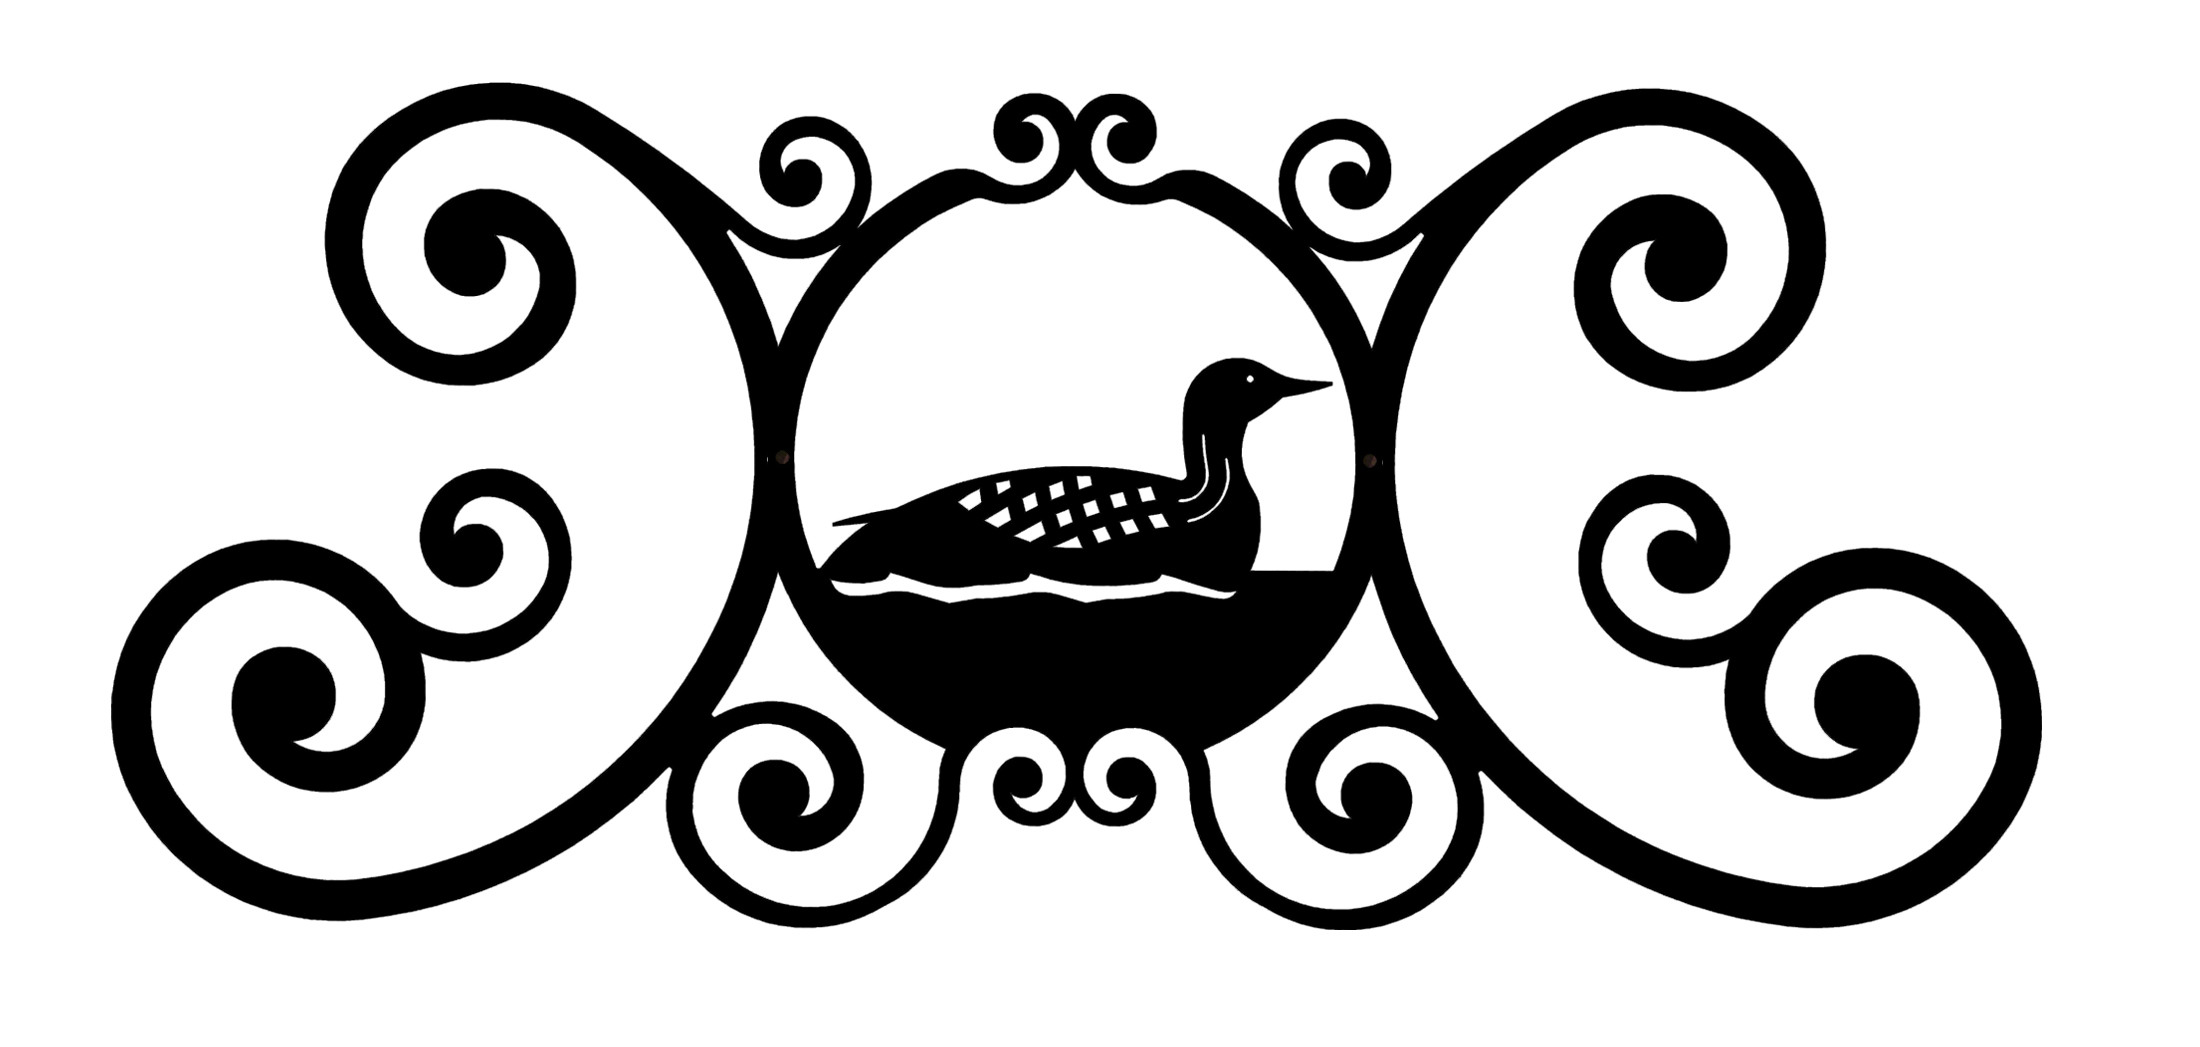 Loon - Over Door Plaque